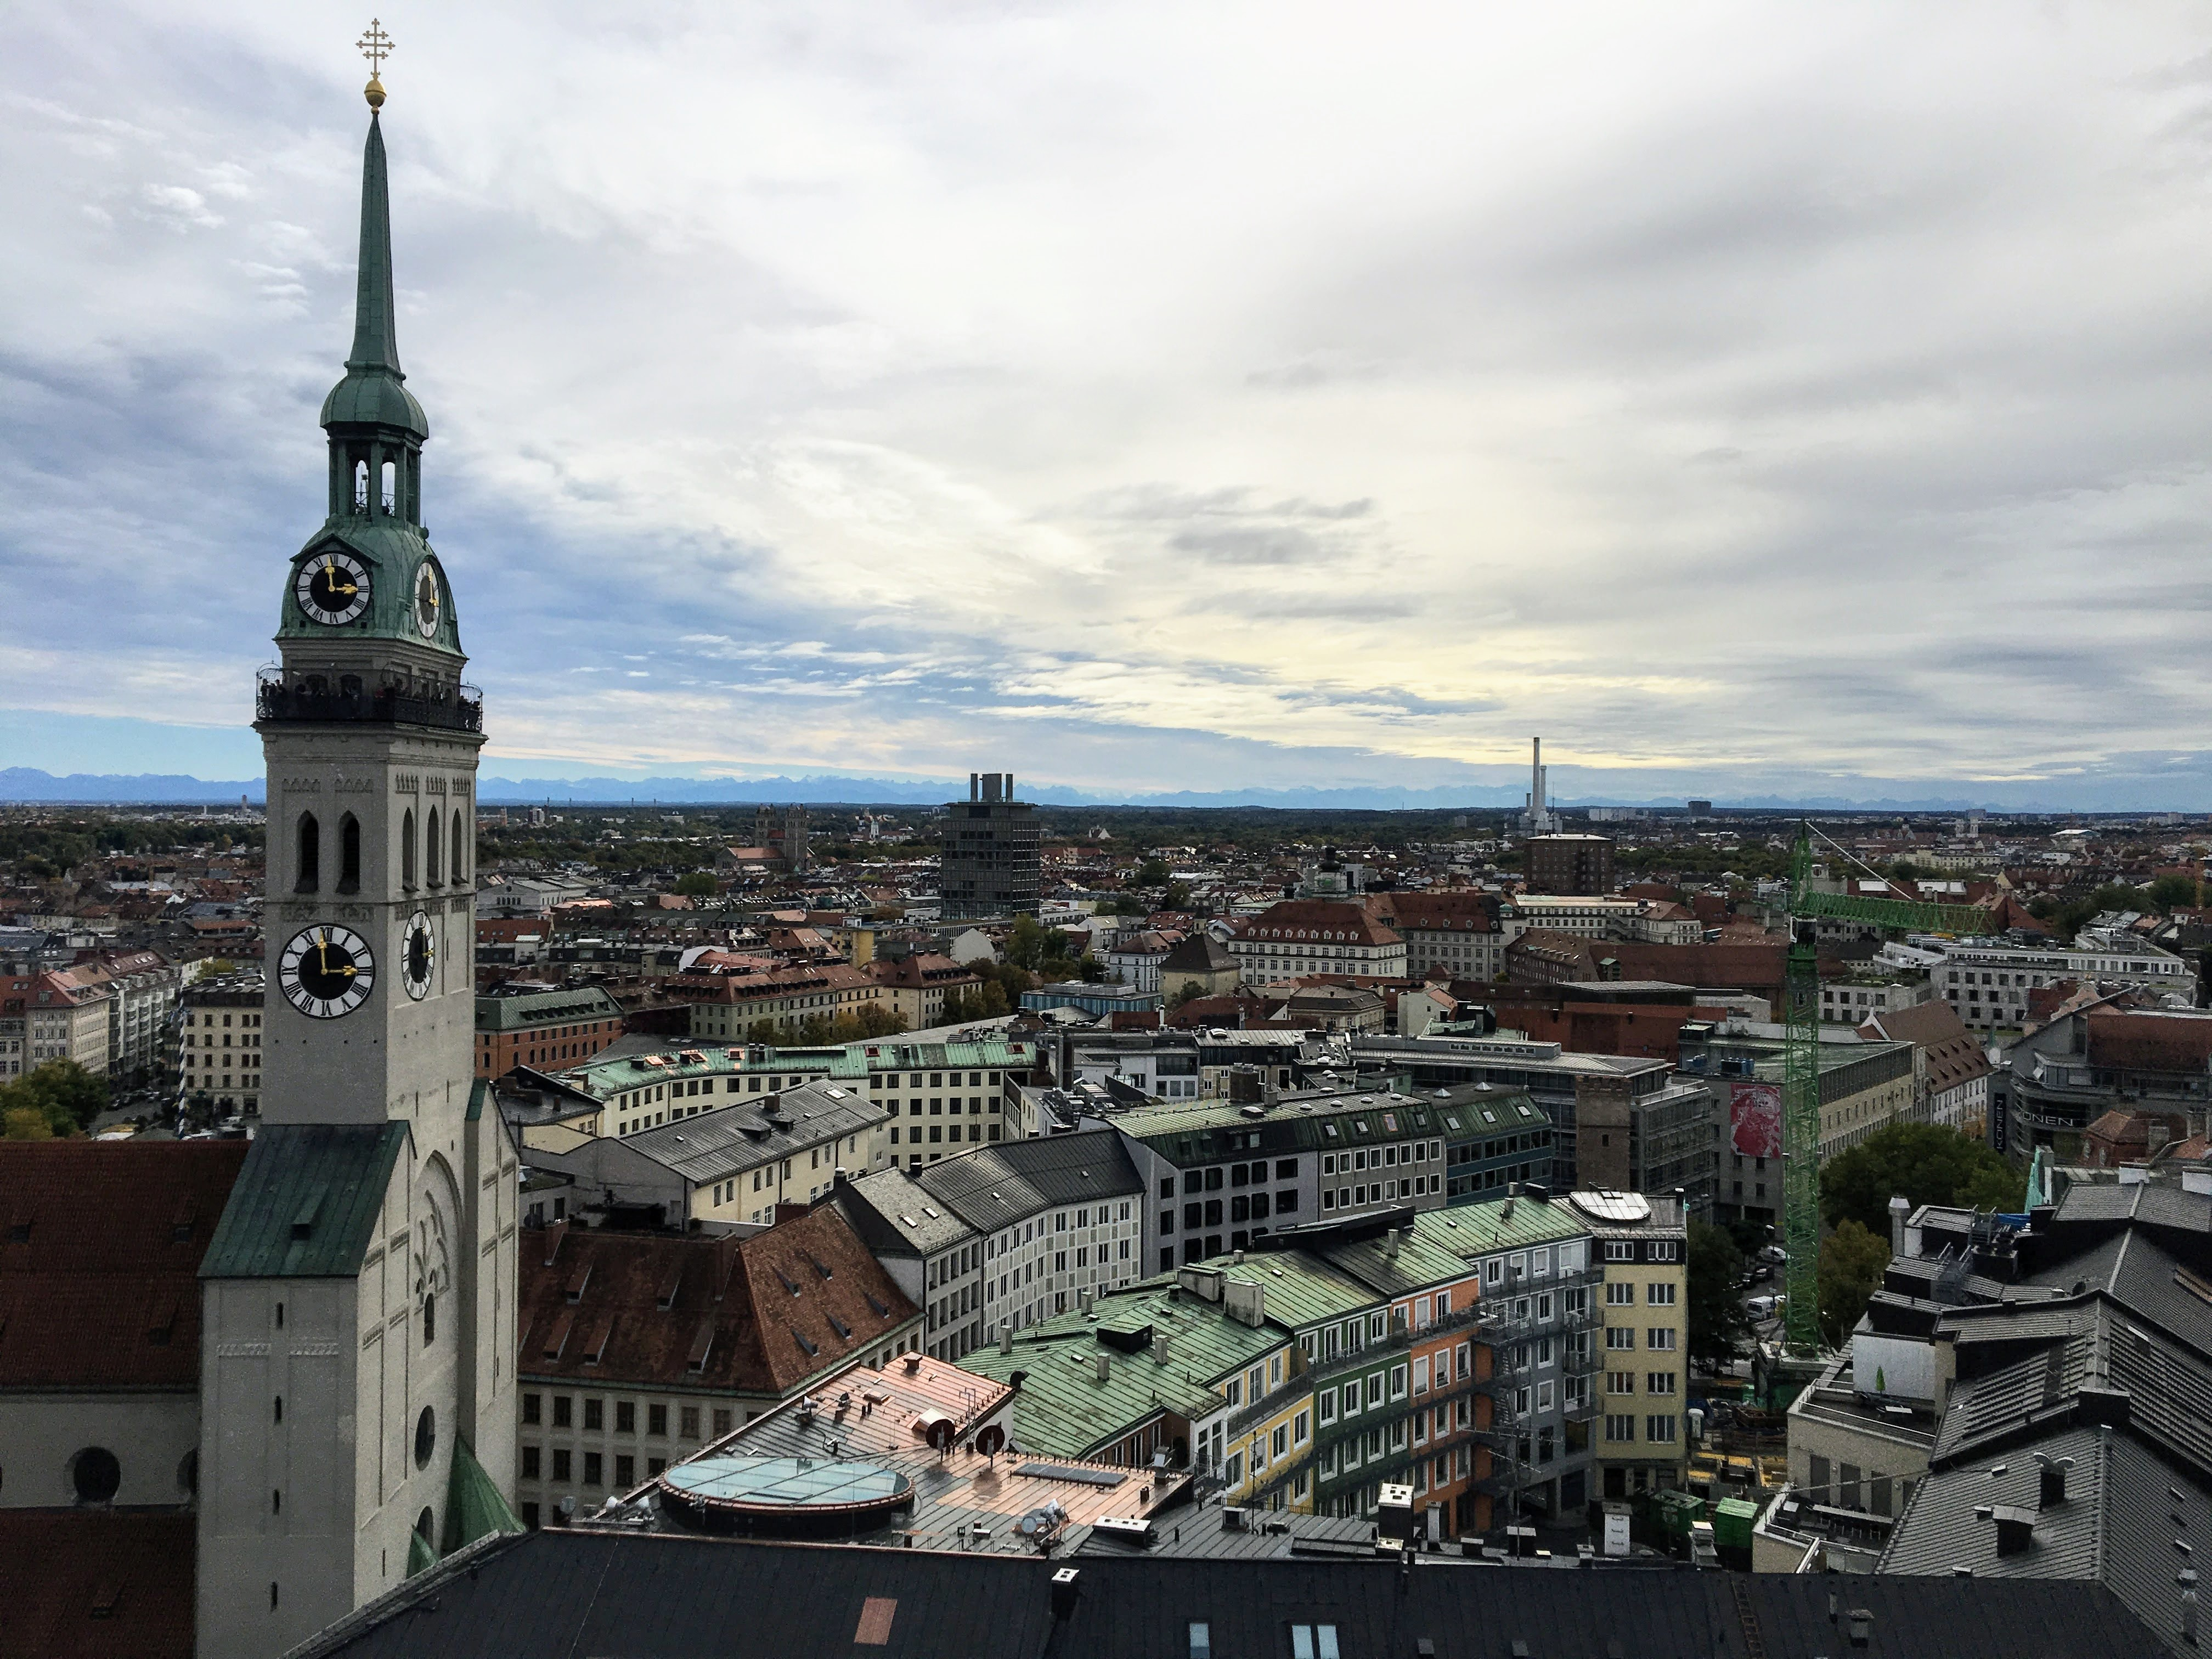 View from the to top of New Town Hall in Munich, Germany